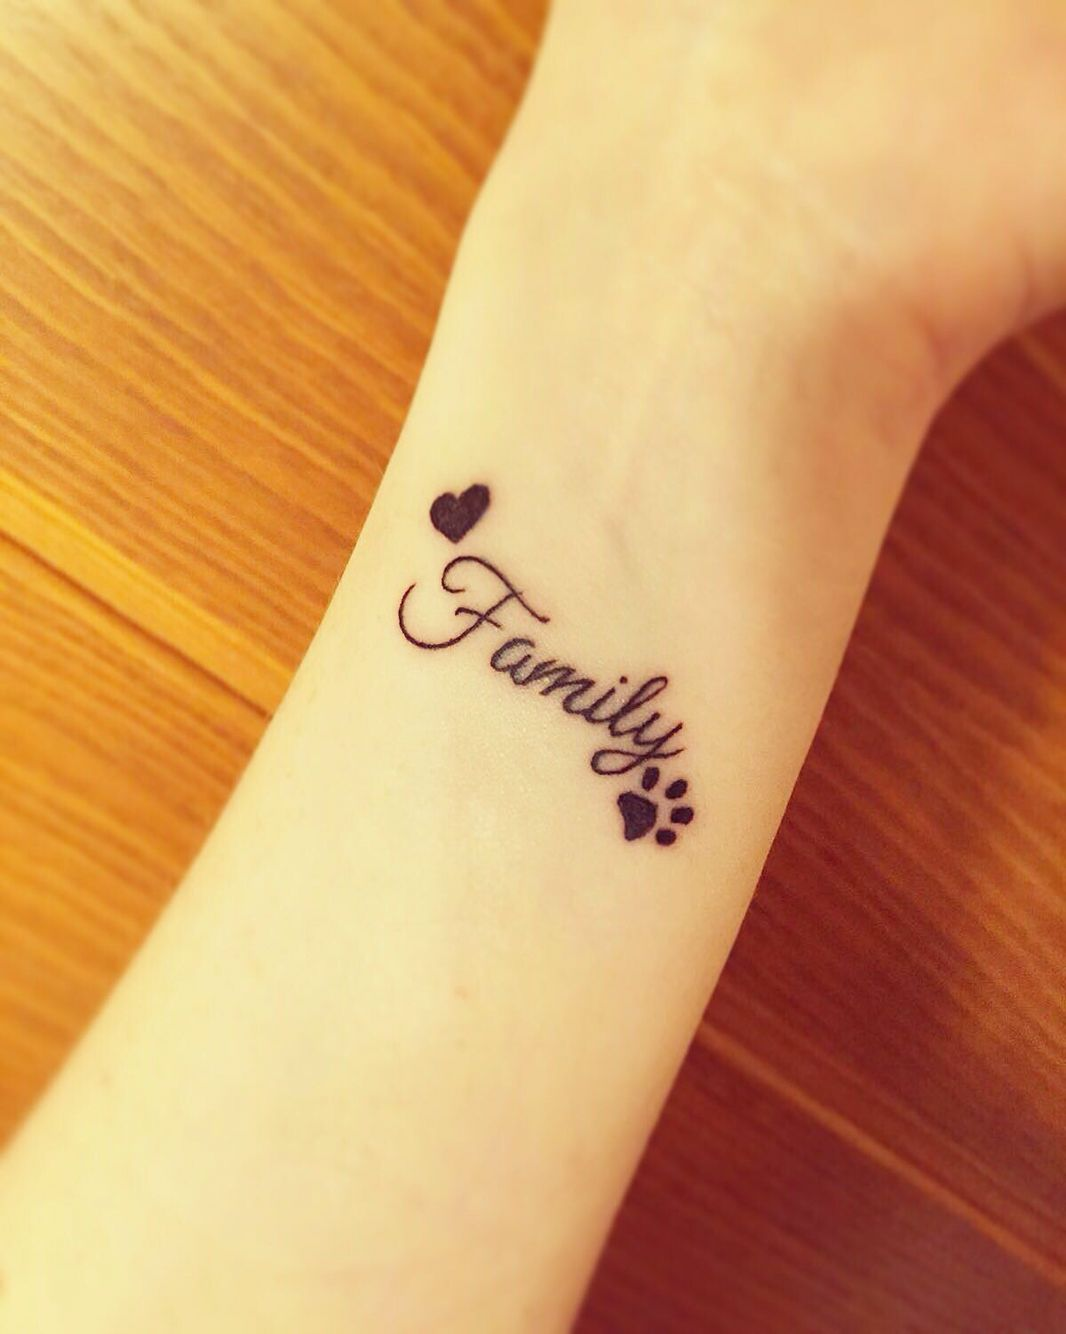 Family Heart Tattoos : family, heart, tattoos, Family, Tattoo, Small, Heart, Tattoos, Women, Meaningful,, Cost,